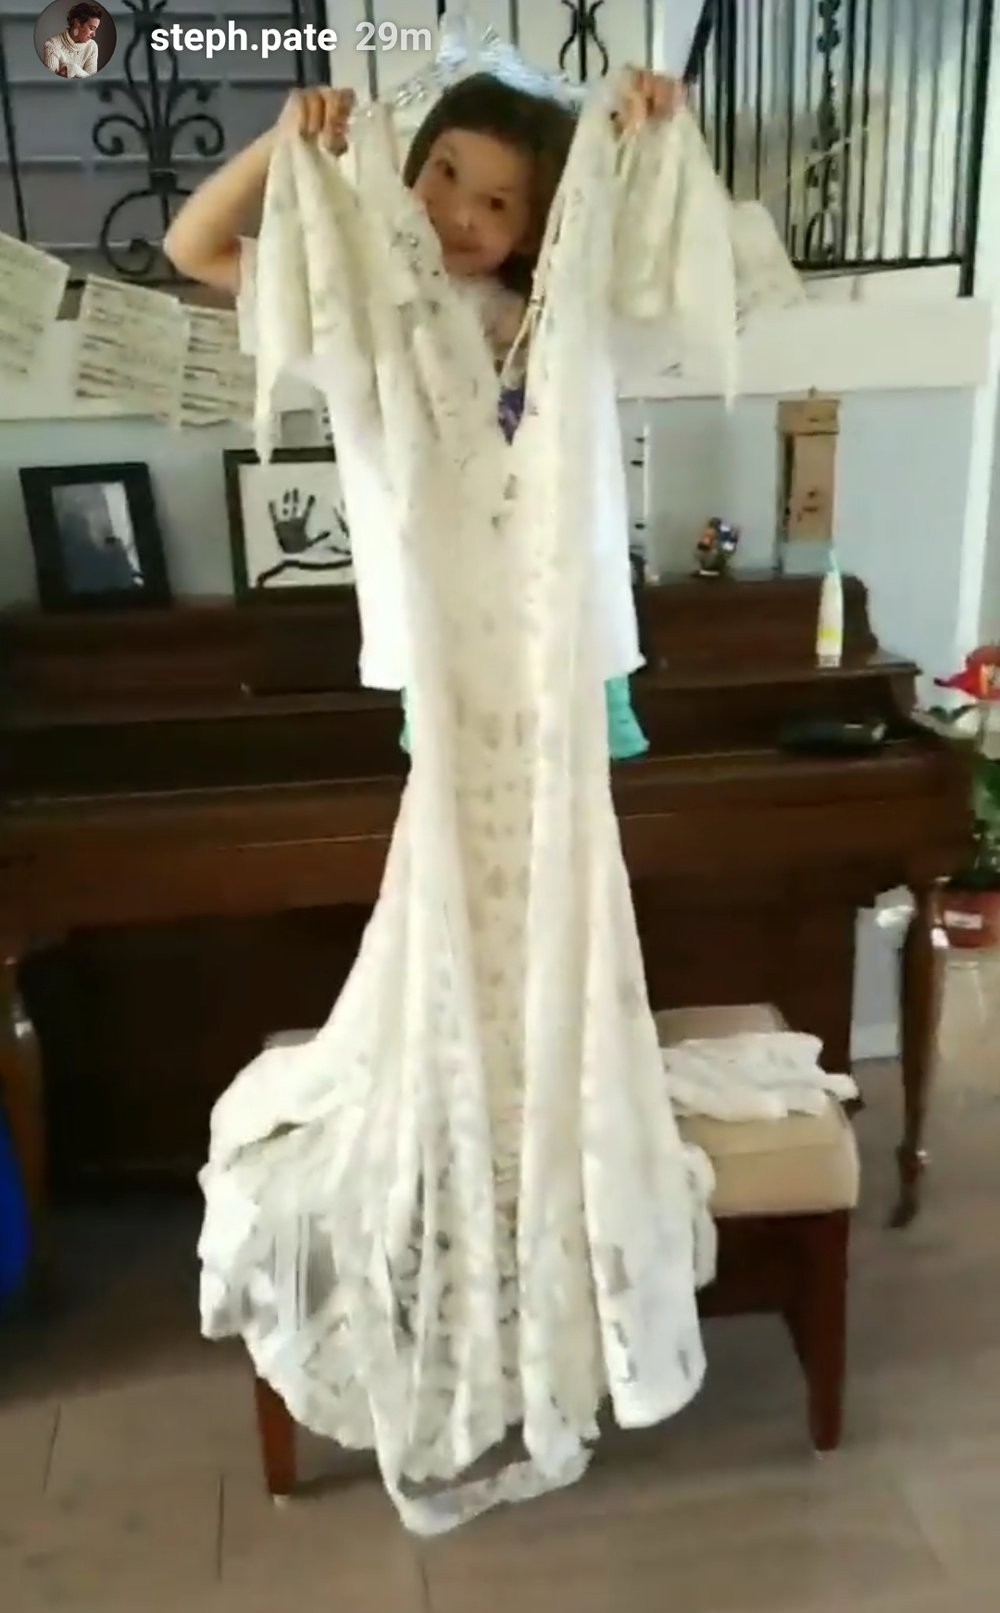 Excuse the poor photo... Cell phone photo of Daughter holding up Reclamation Dress.